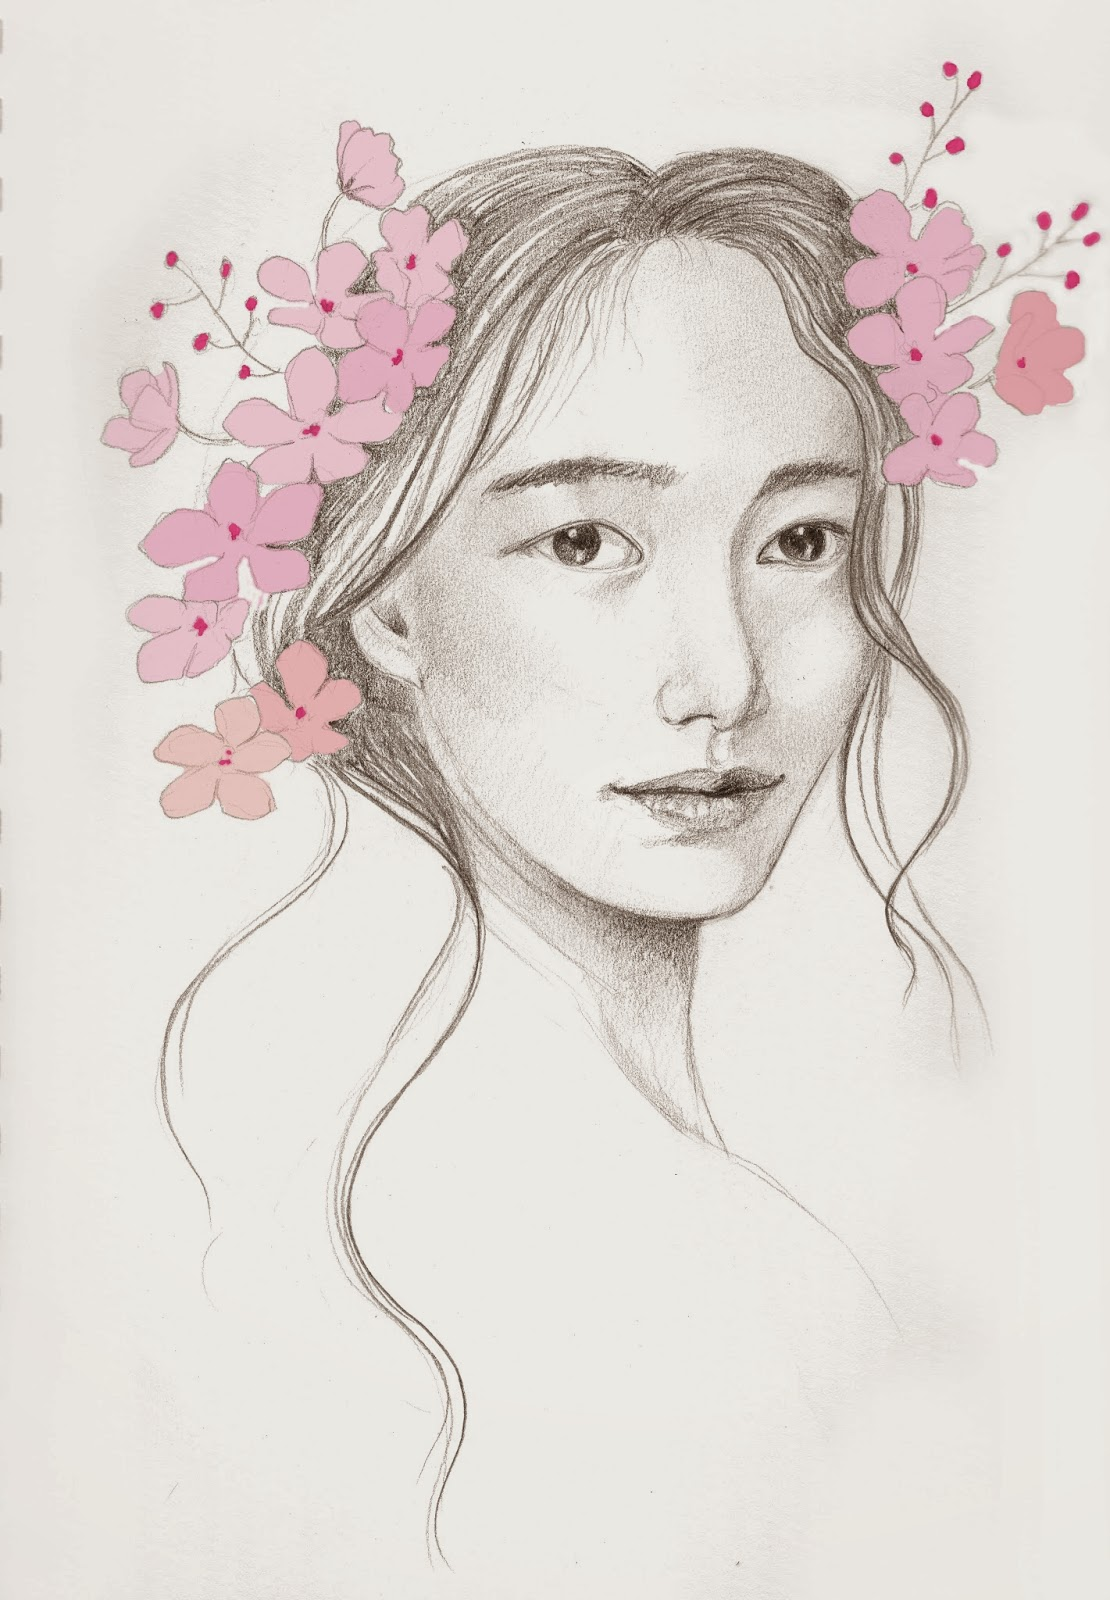 how to draw a cherry blossom tree in pencil